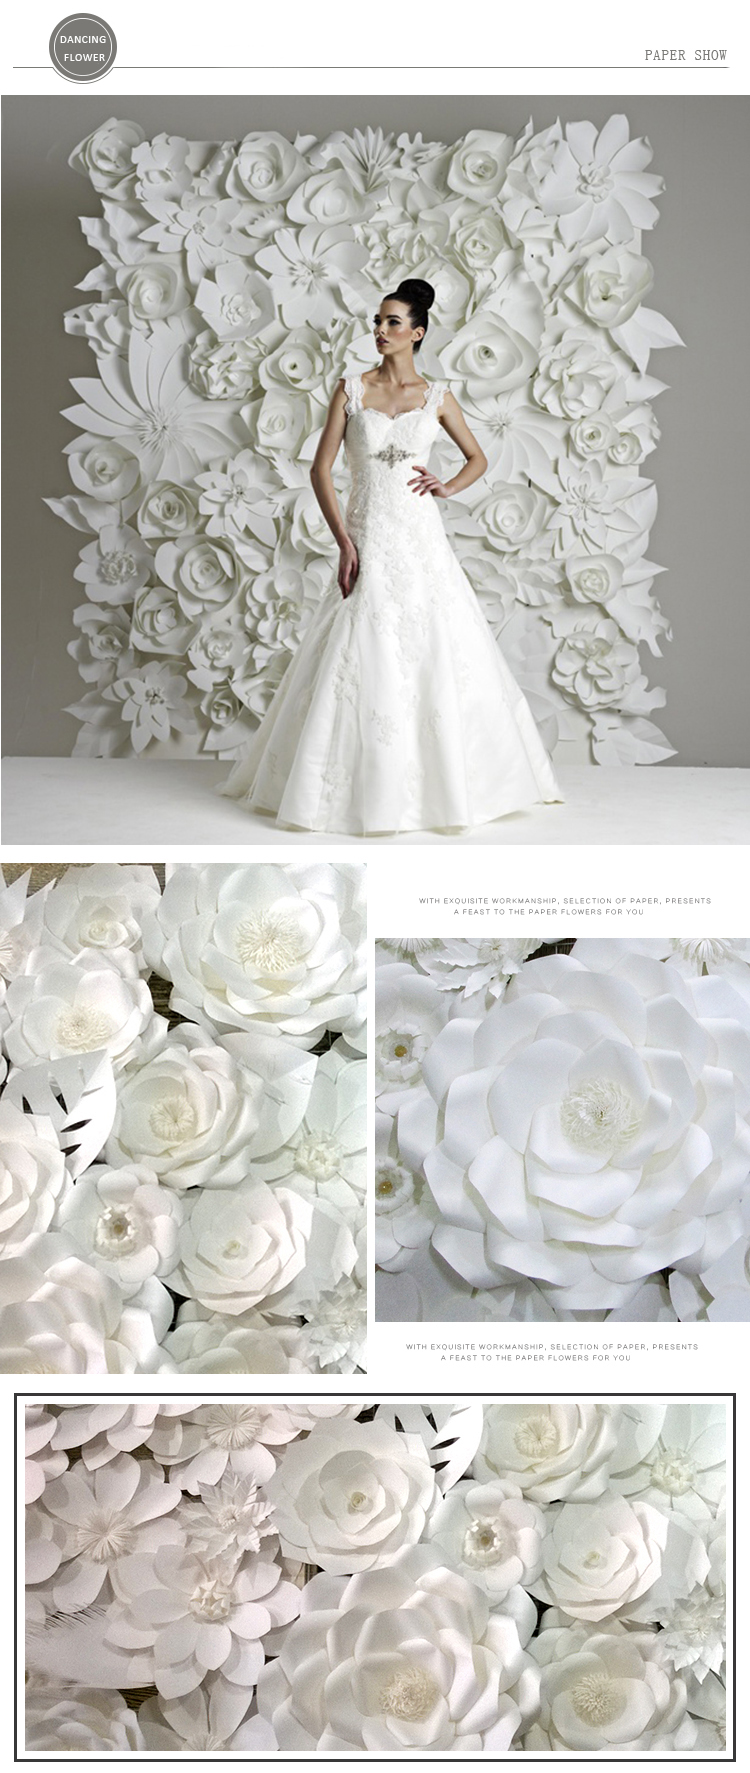 Artificial White Decoration Wedding Flower Backdrop Paper Flowers